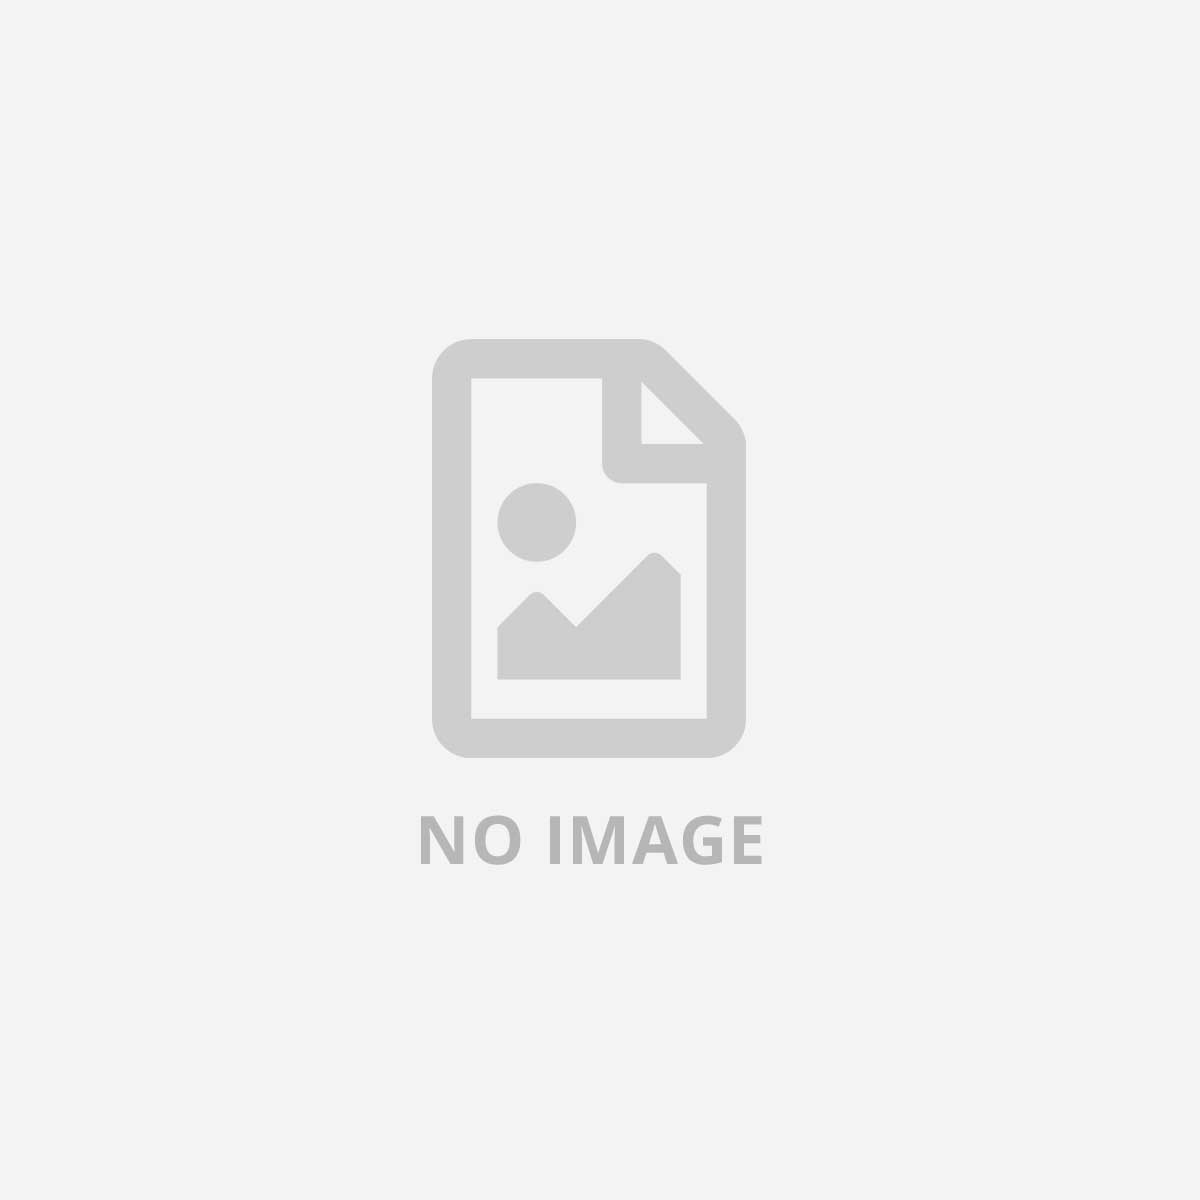 ELECTRONIC ARTS PC ANTHEM